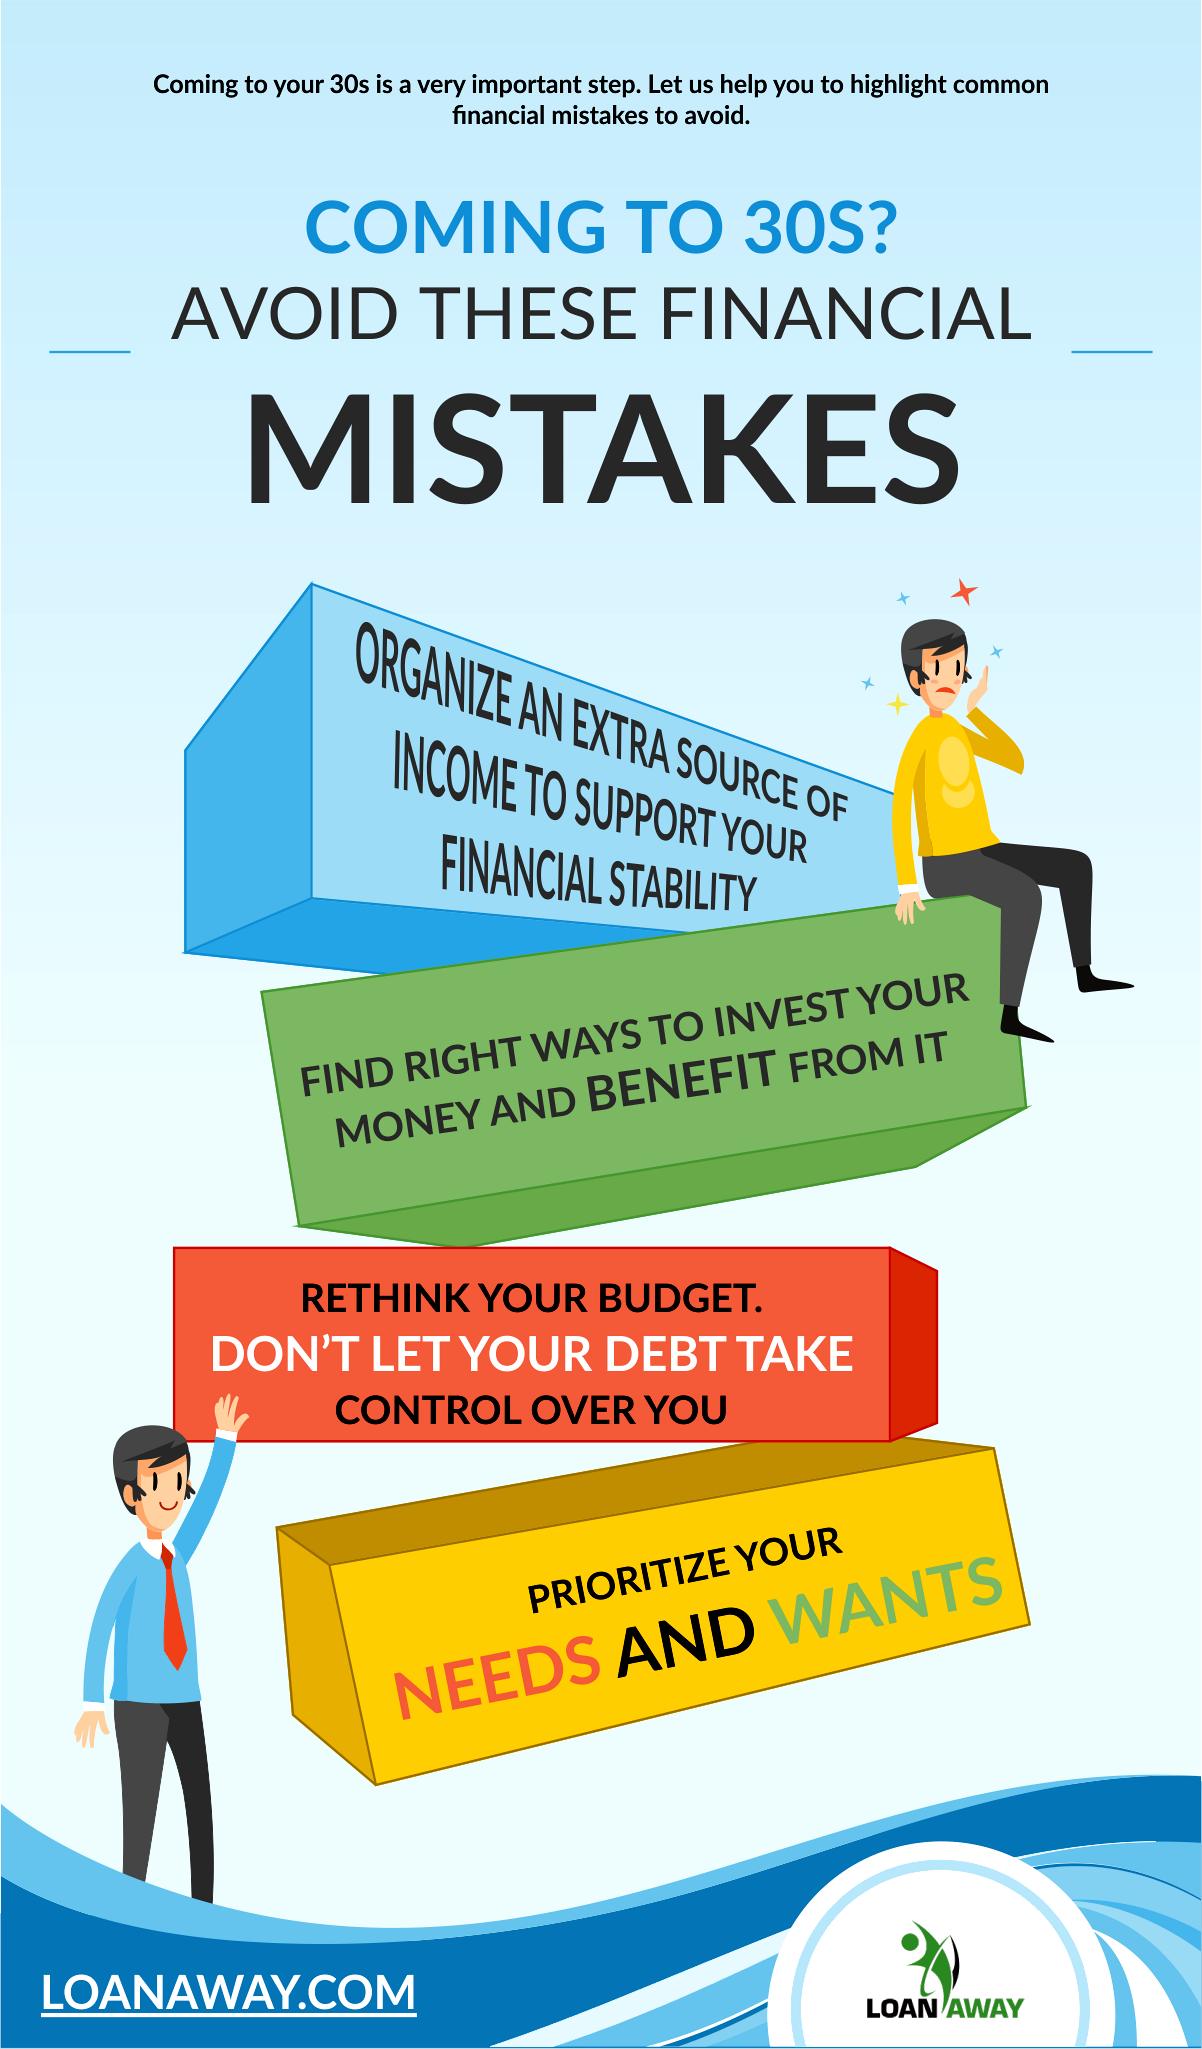 Coming to your 30s is a very important step. Let us help you to highlight common financial mistakes to avoid.